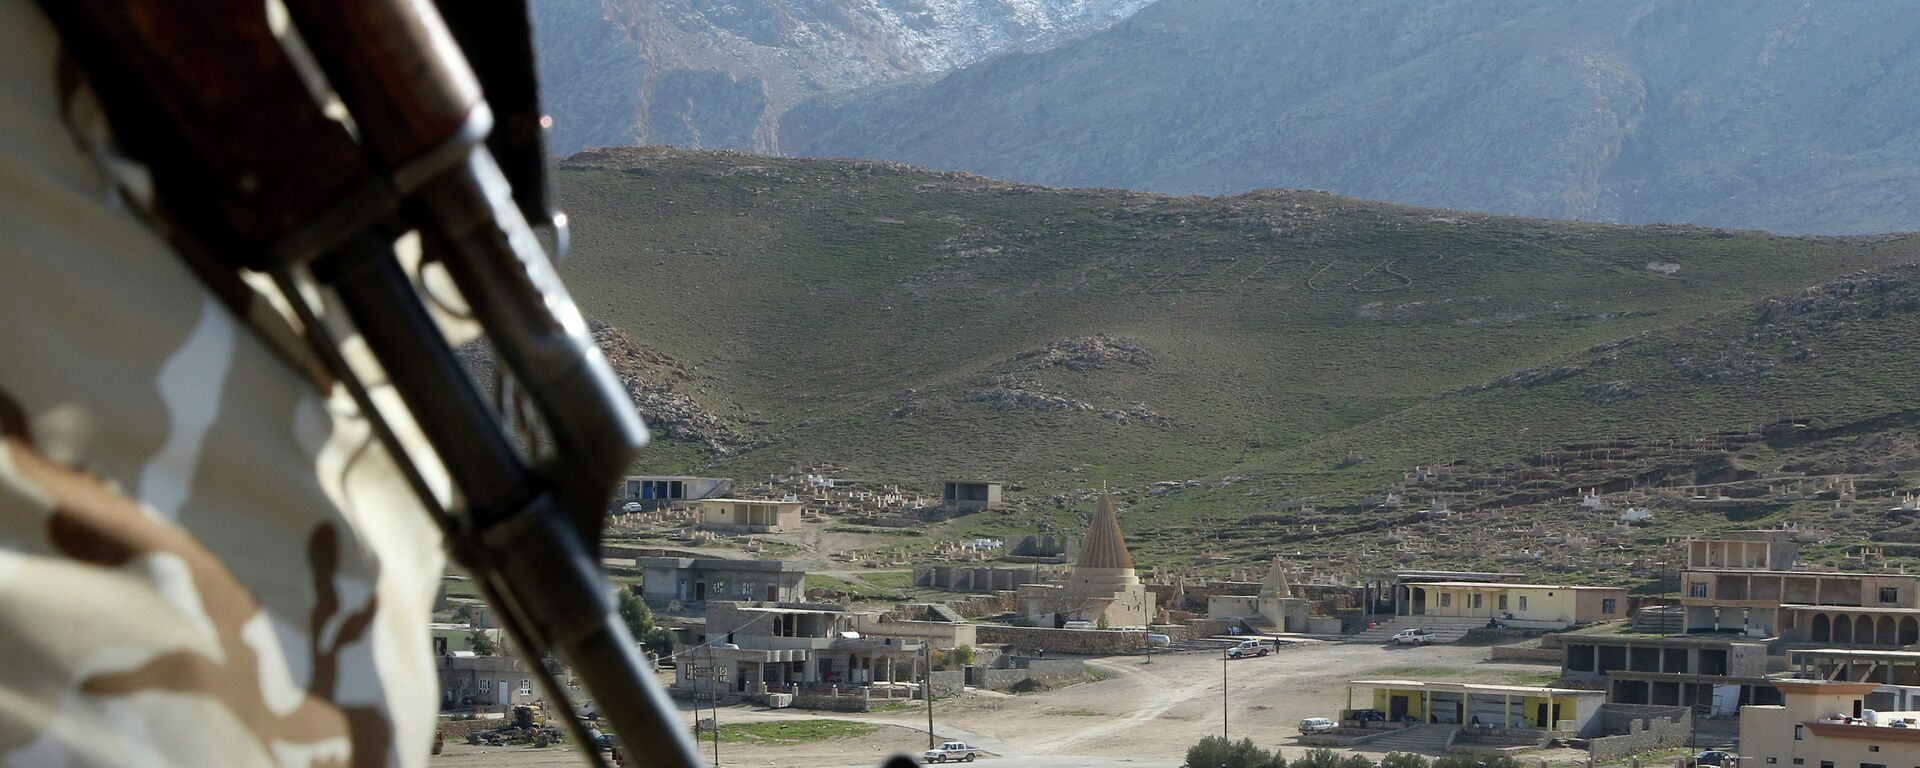 In this Sunday Jan. 11, 2015 photo, a Yazidi fighter protects the Sharaf al-Deen temple shrine, one of the holiest for the Yazidis, a religious minority whom the Islamic State group considers heretics ripe for slaughter, in Sinjar, northern Iraq - Sputnik Italia, 1920, 14.08.2017